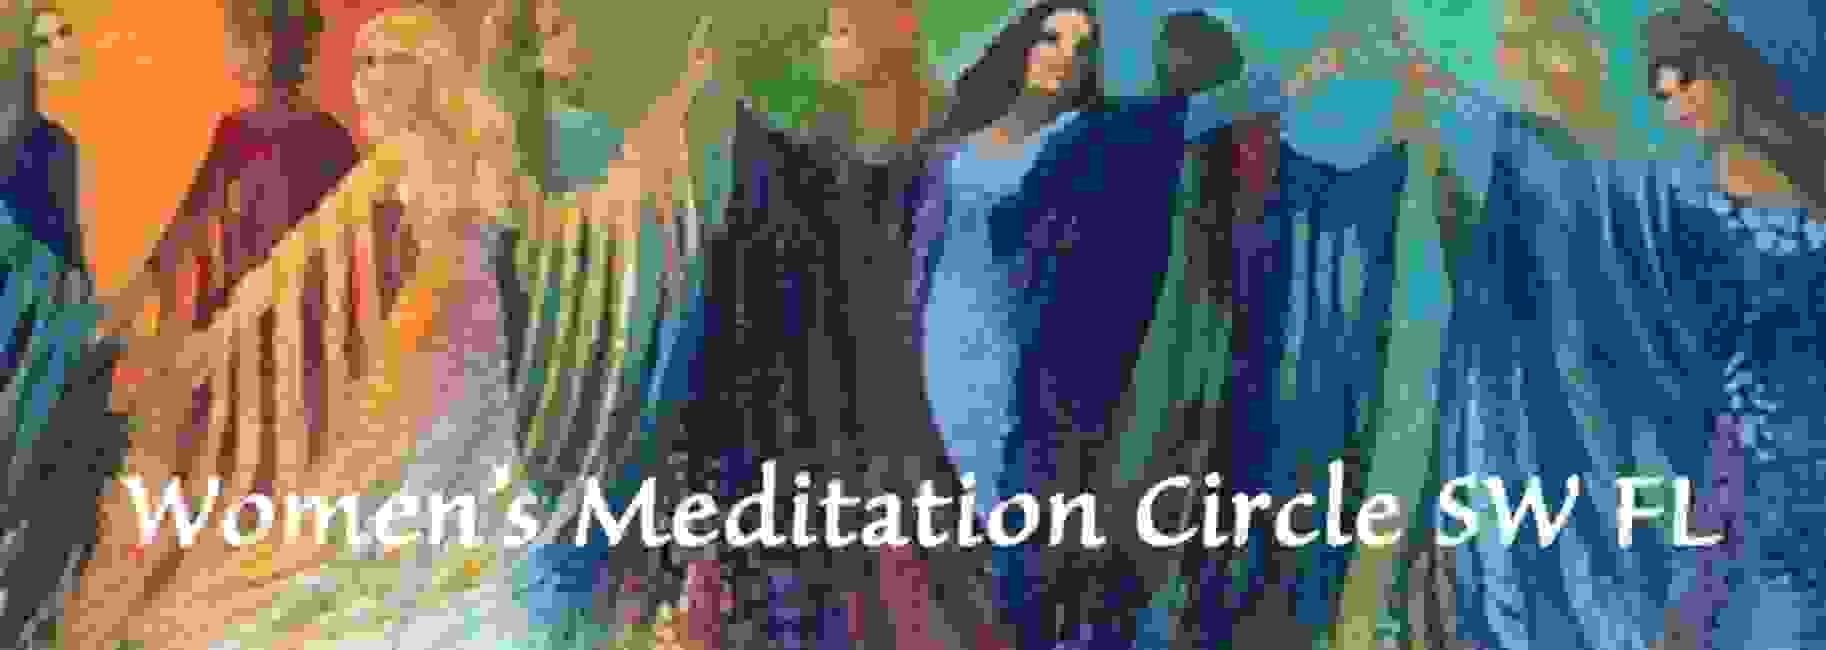 Women's Meditation every other Friday at Rising Tide International.